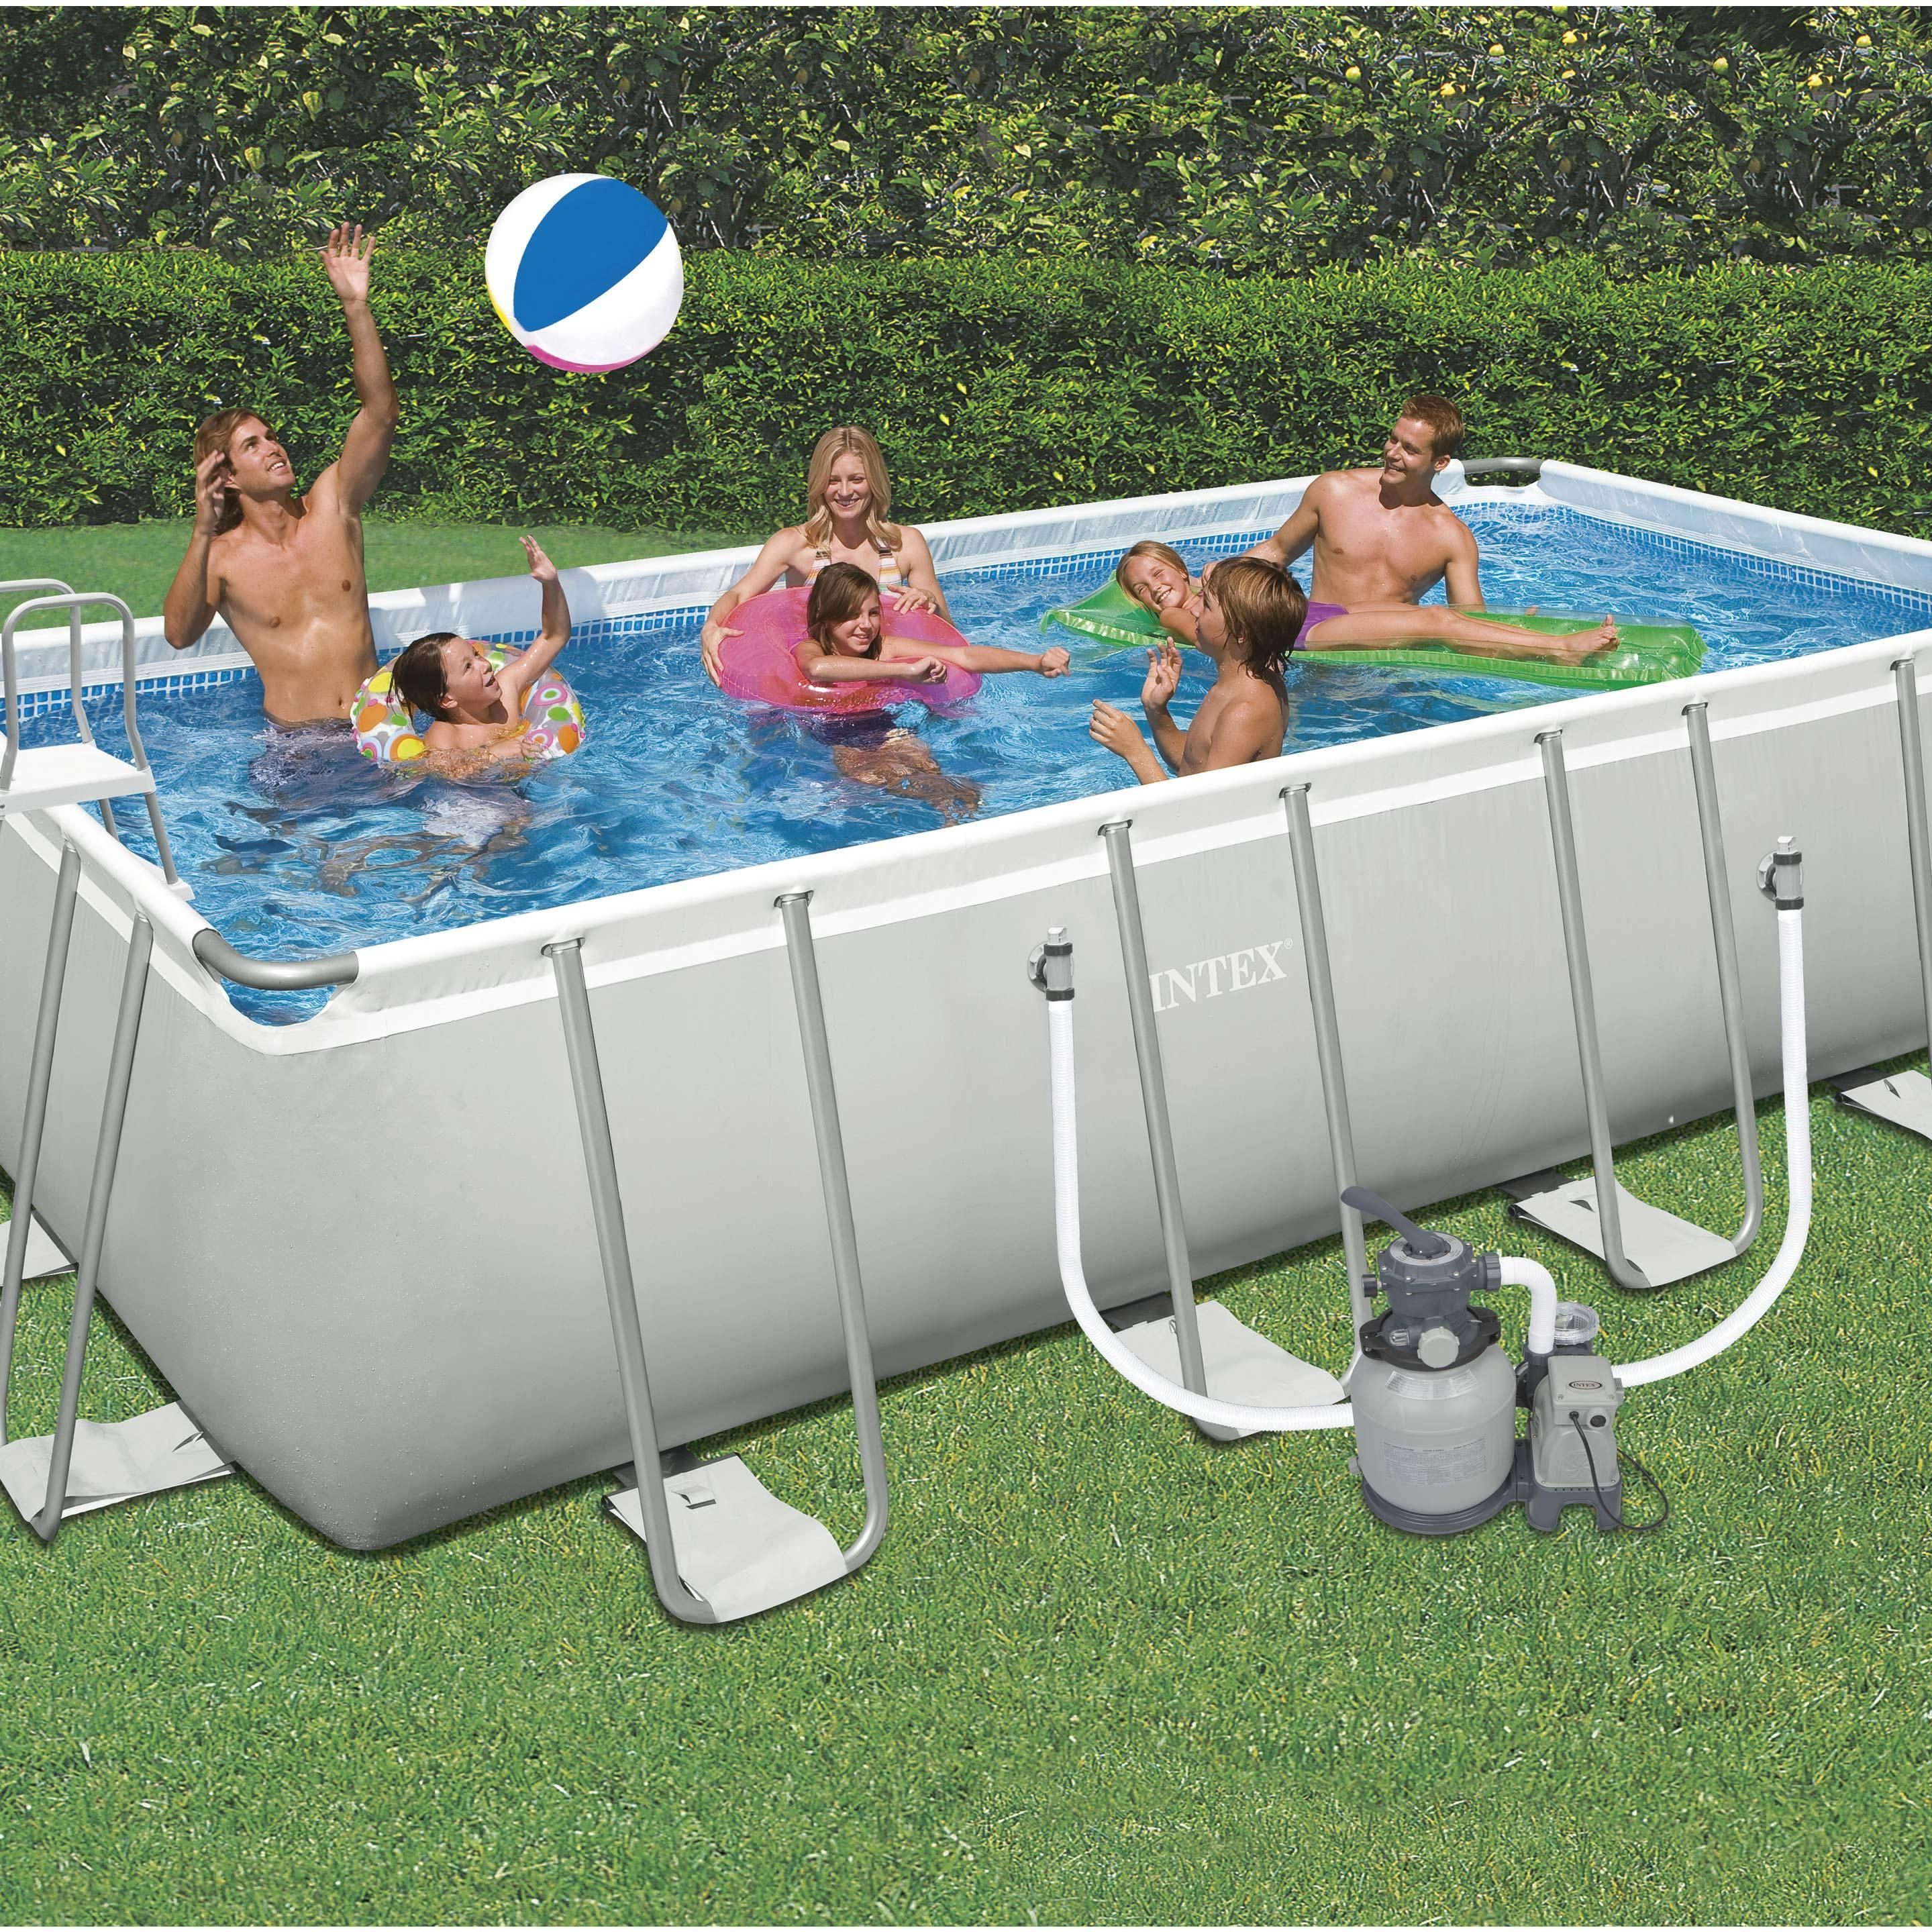 Leroy Merlin Spa Intex piscine tubulaire ultra intex, l.6.05 x l.3.3 x h.1.32 m en